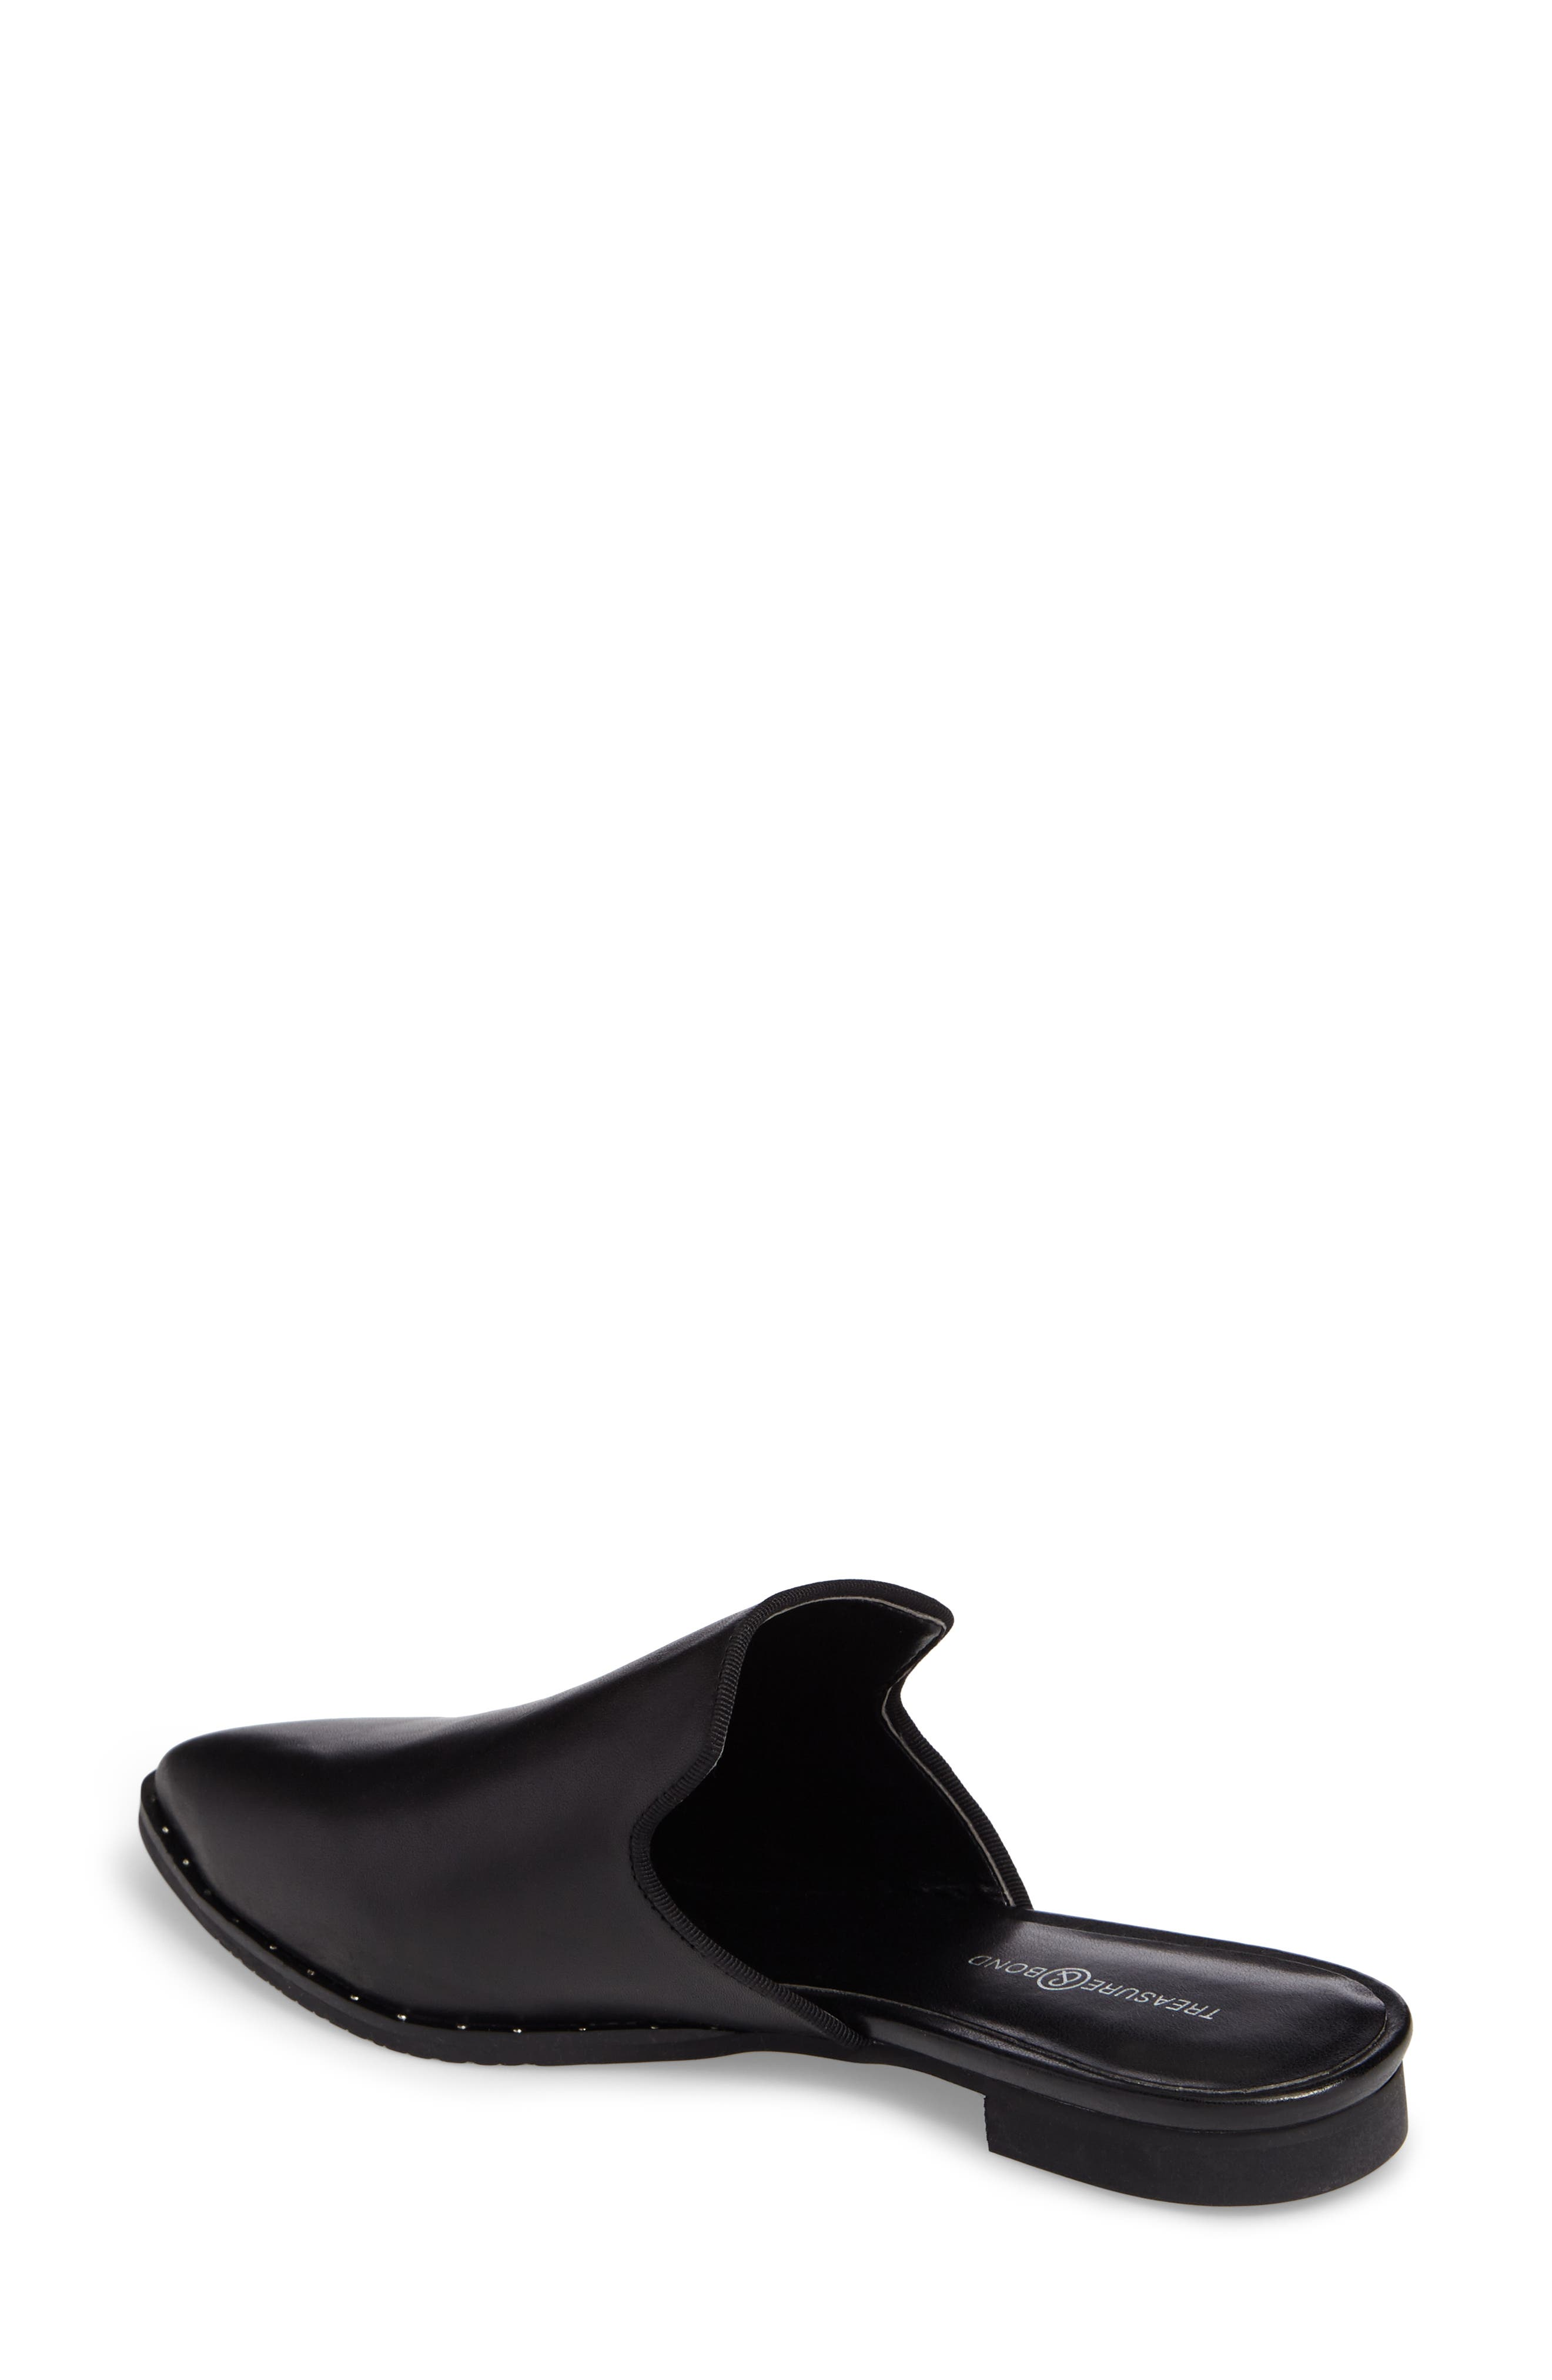 Keaton Loafer Mule,                             Alternate thumbnail 2, color,                             Black Leather